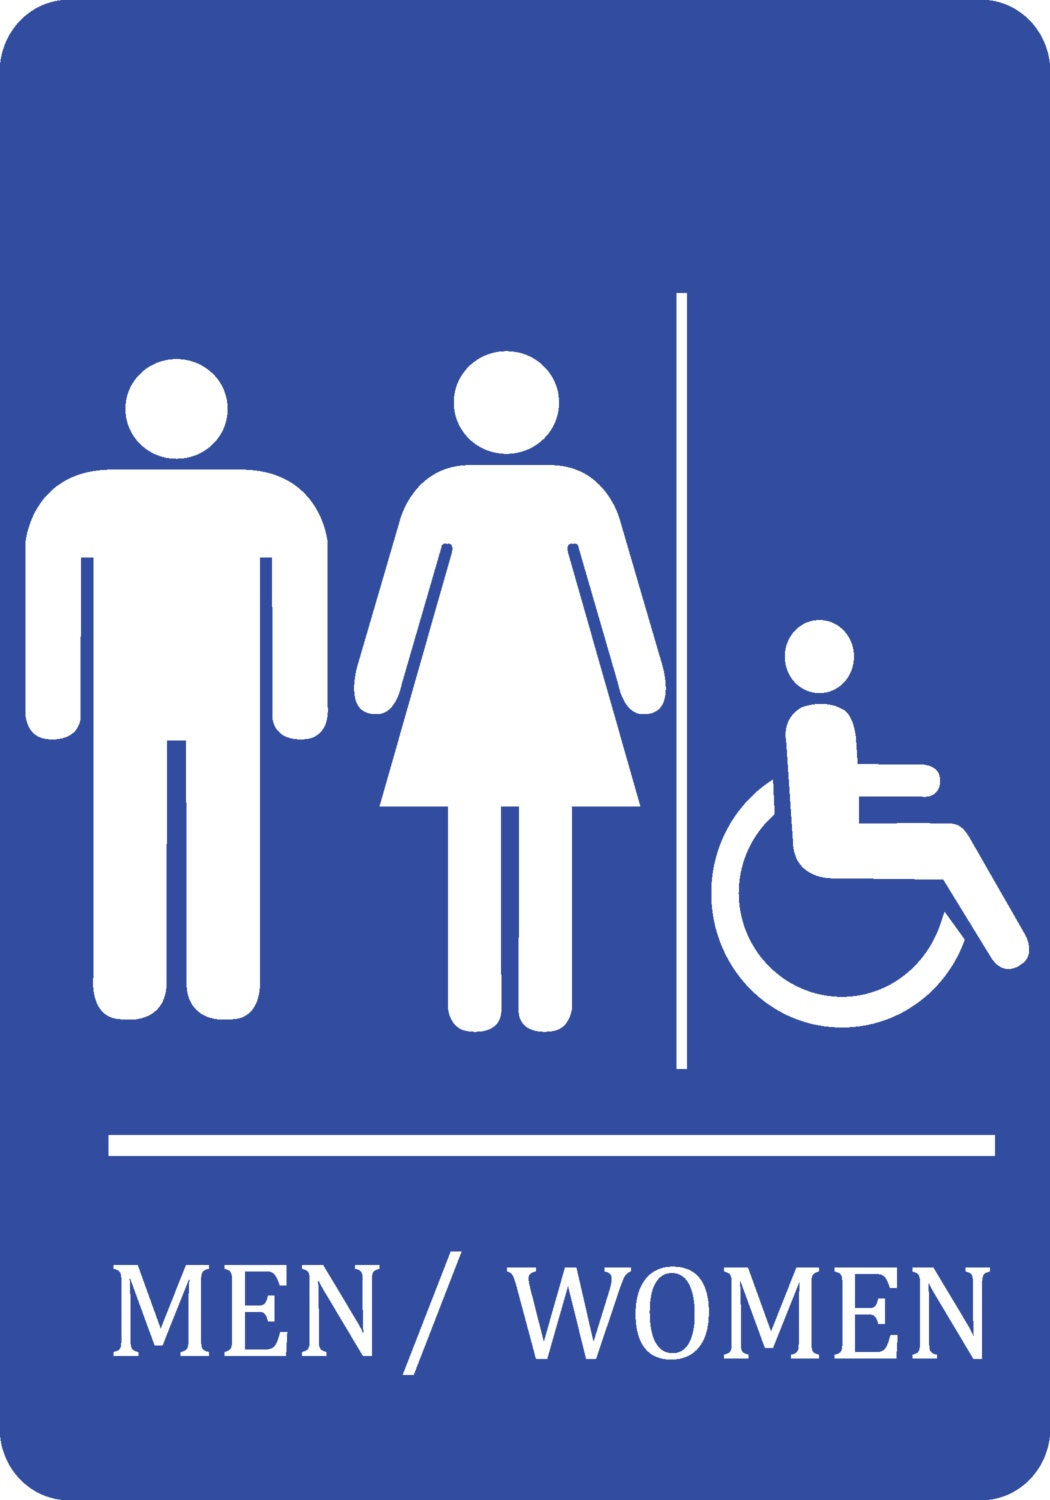 Handicap Bathroom Signs Blue Handicap Men Women Bathroom Sign Quality Plastic Outdoor